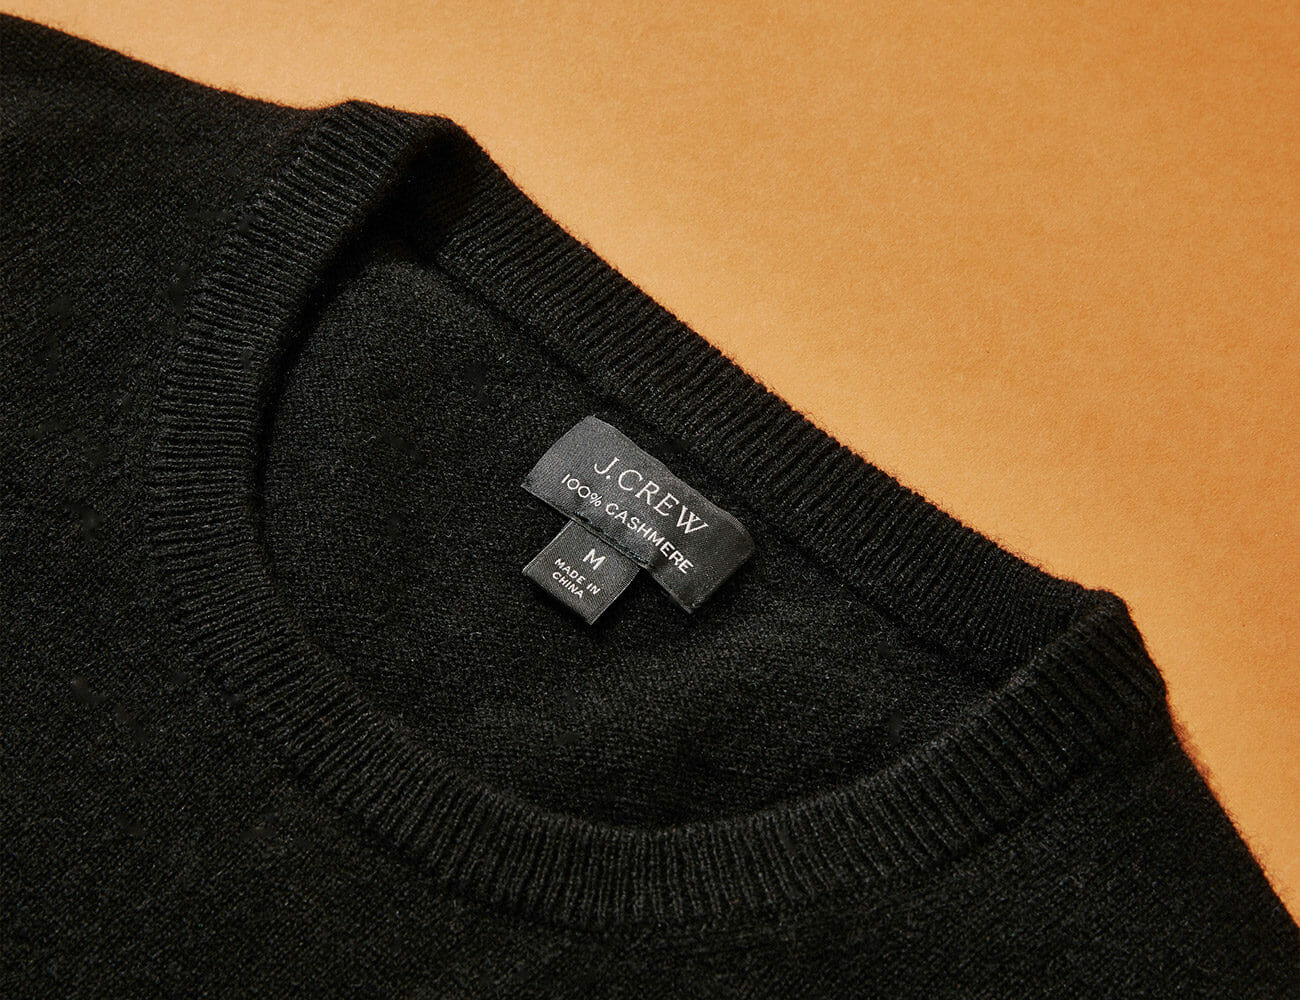 The-Best-Cashmere-Sweaters-for-100-or-Less-Gear-Patrol-JCrew-Slide-2